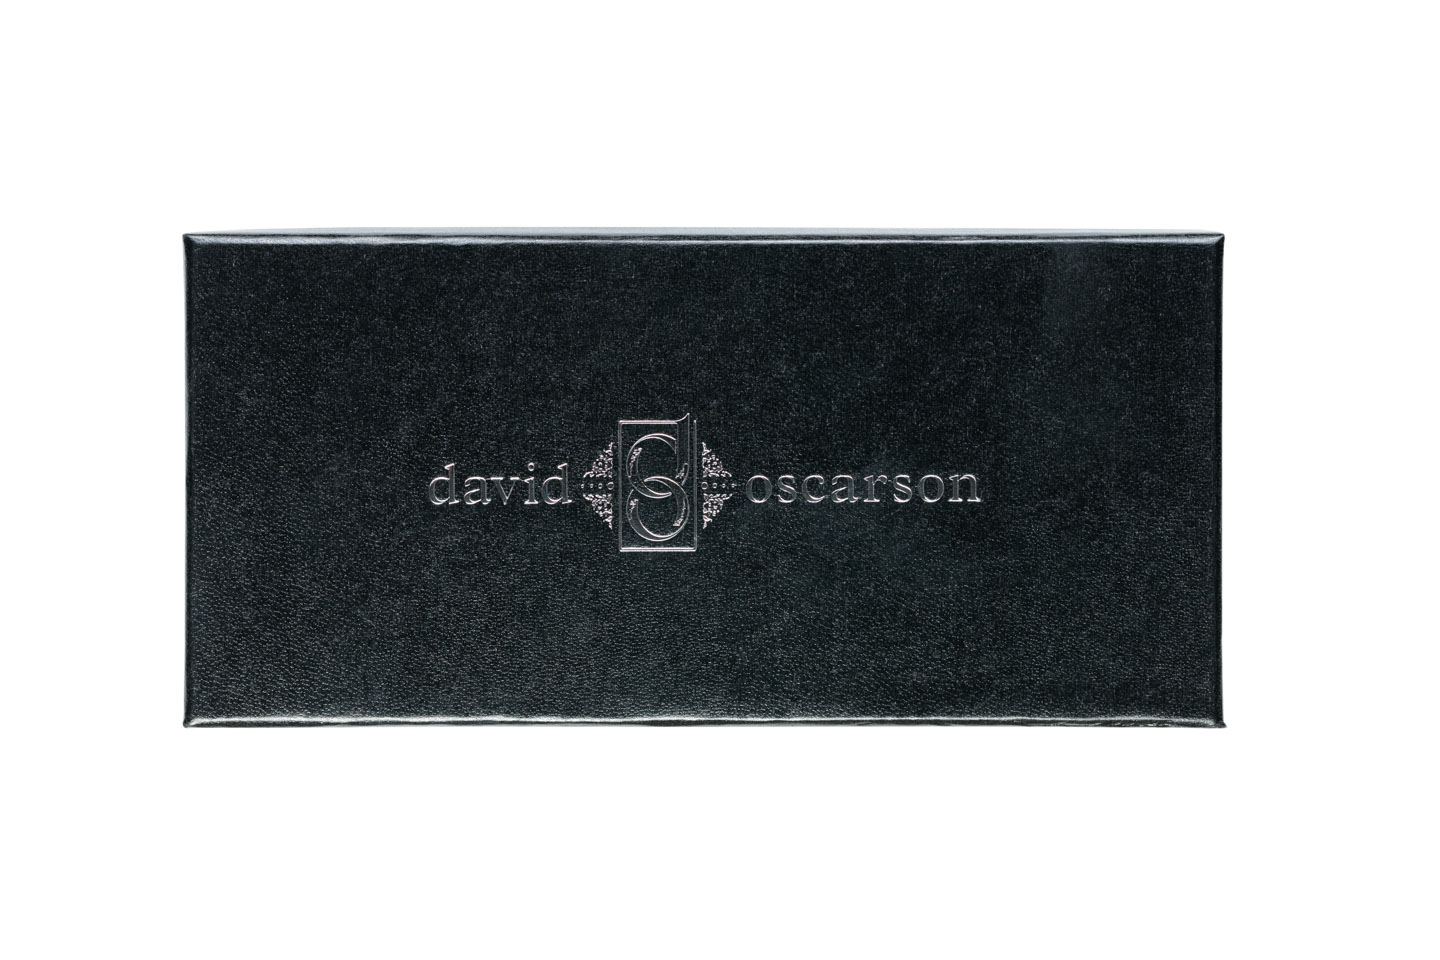 David Oscarson Pen Case